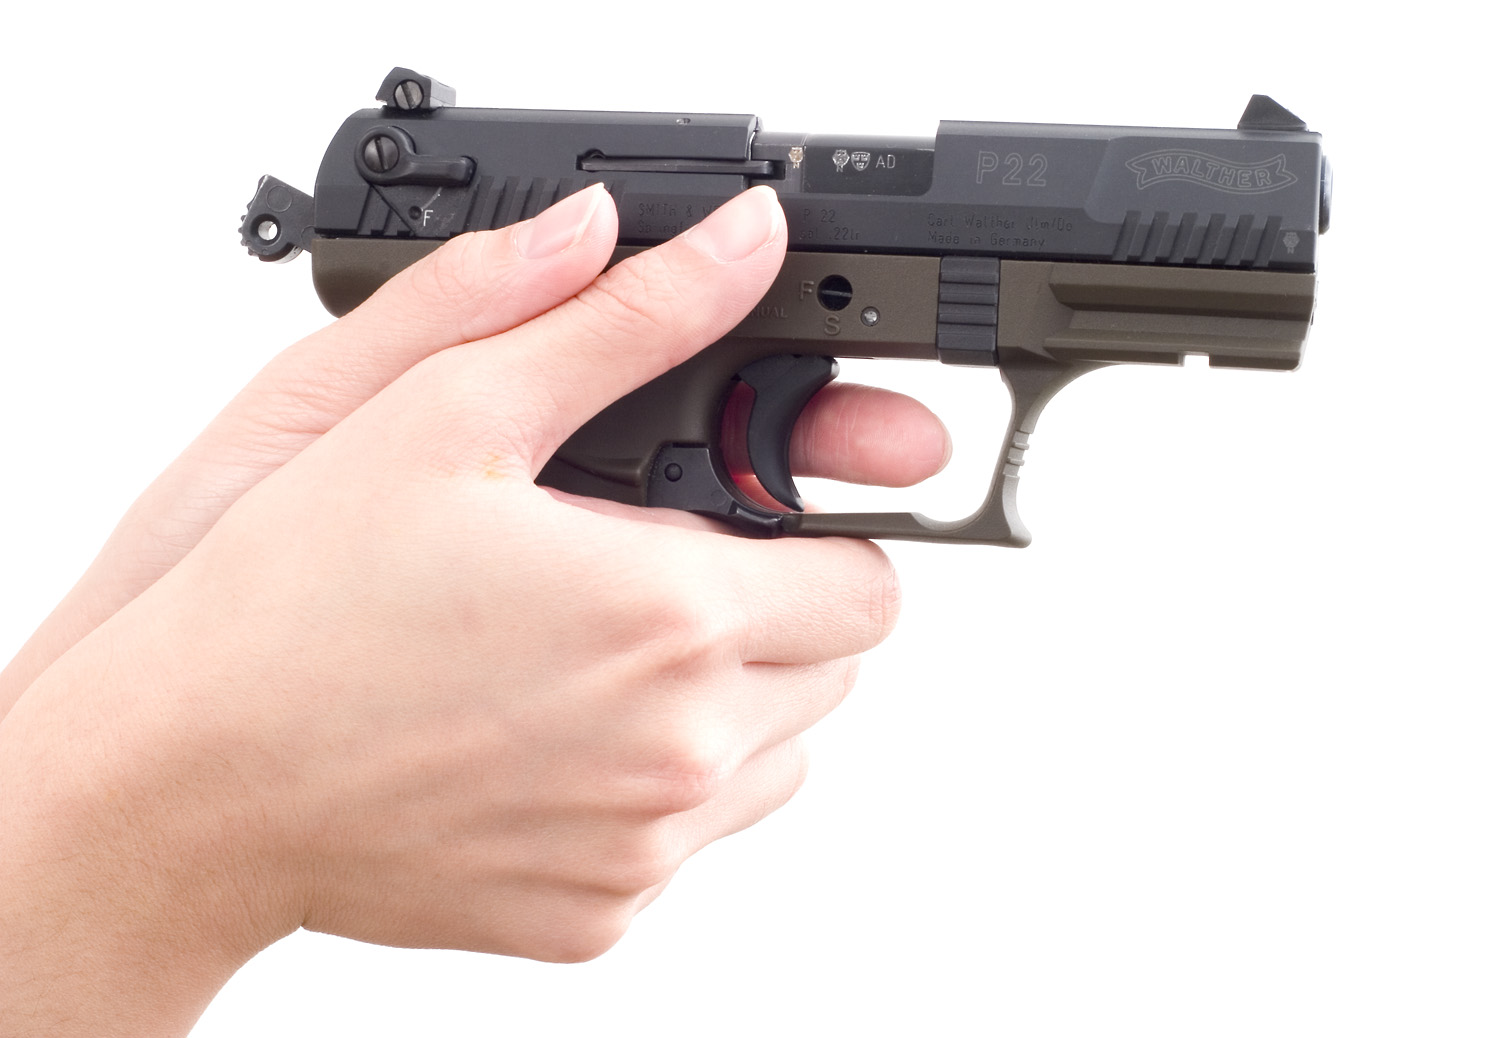 Walther P22, good fit for small hands.